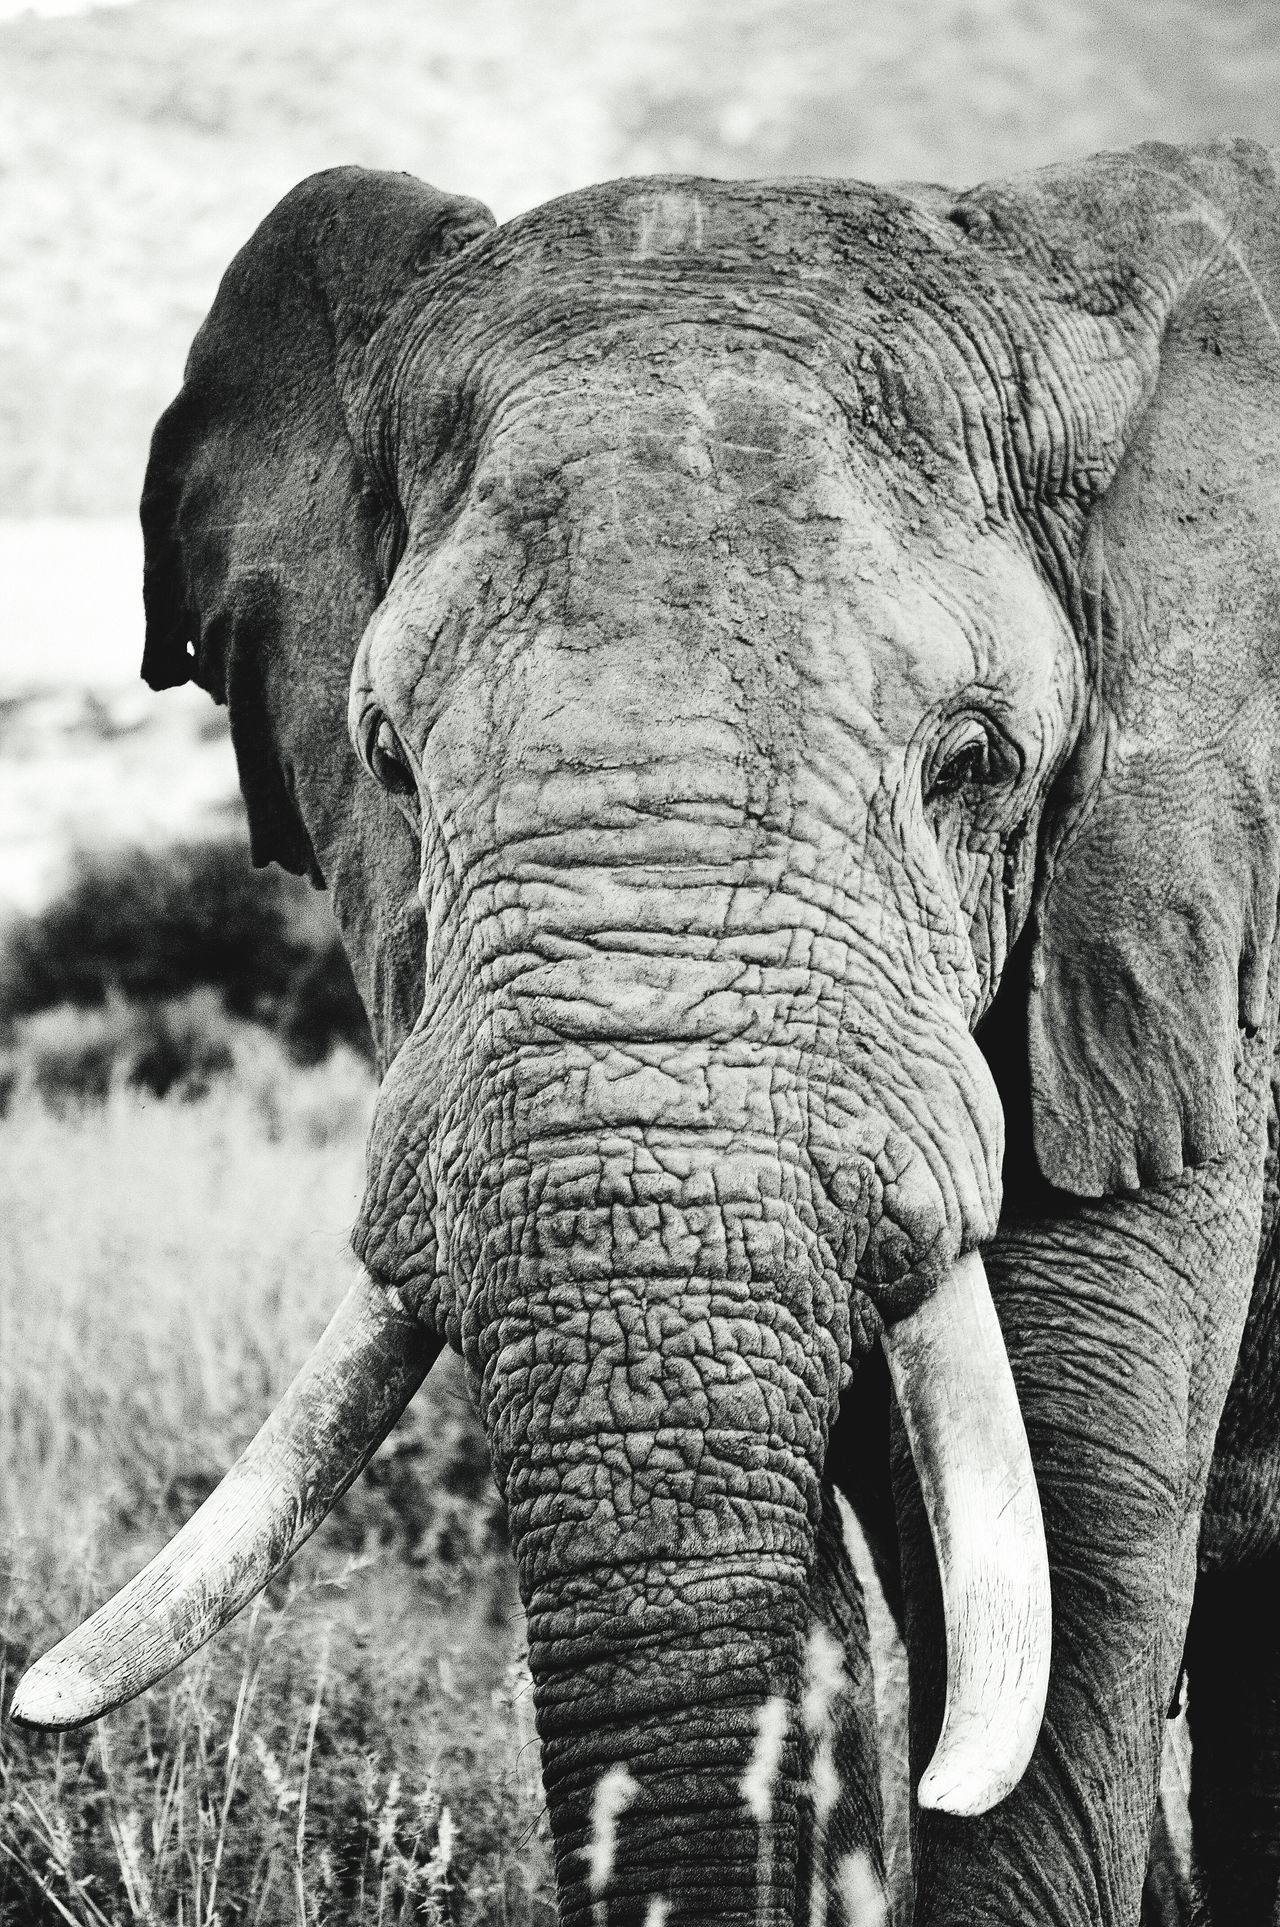 Elephant Africanelephant Black And White Portrait HEAD Safari Safari Animals National Park Animals In The Wild Wildlife & Nature GameDrive Nature_collection Nature Animals Bigfive Tusk South Africa Pilanesberg Nationalpark Wildlife Mammal The Portraitist - 2017 EyeEm Awards